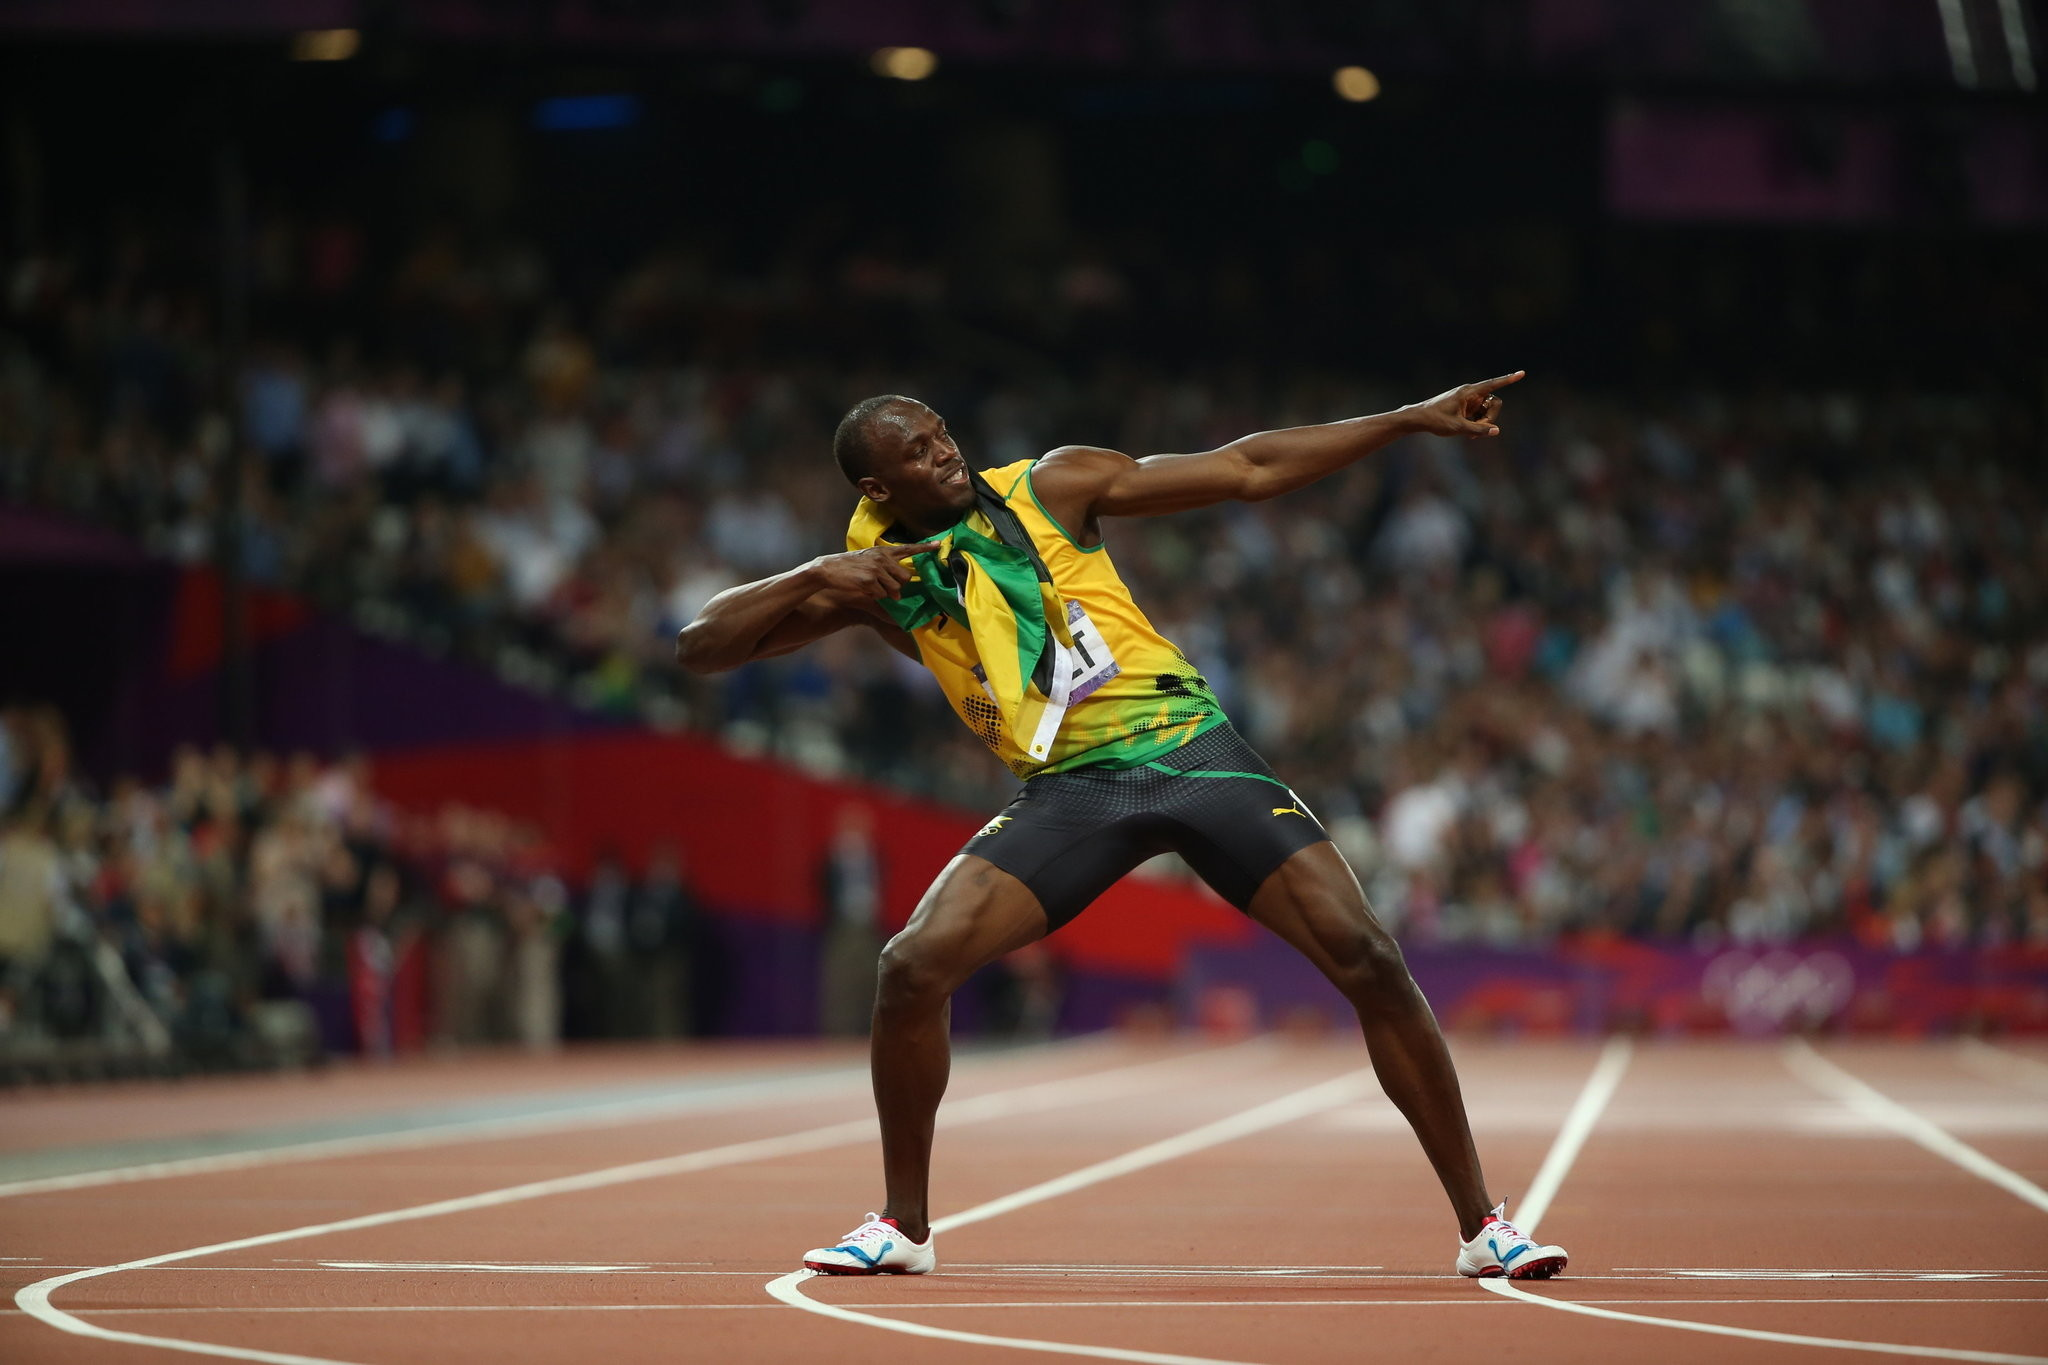 Usain Bolt Wallpaper 2018 Olympics (76+ images)